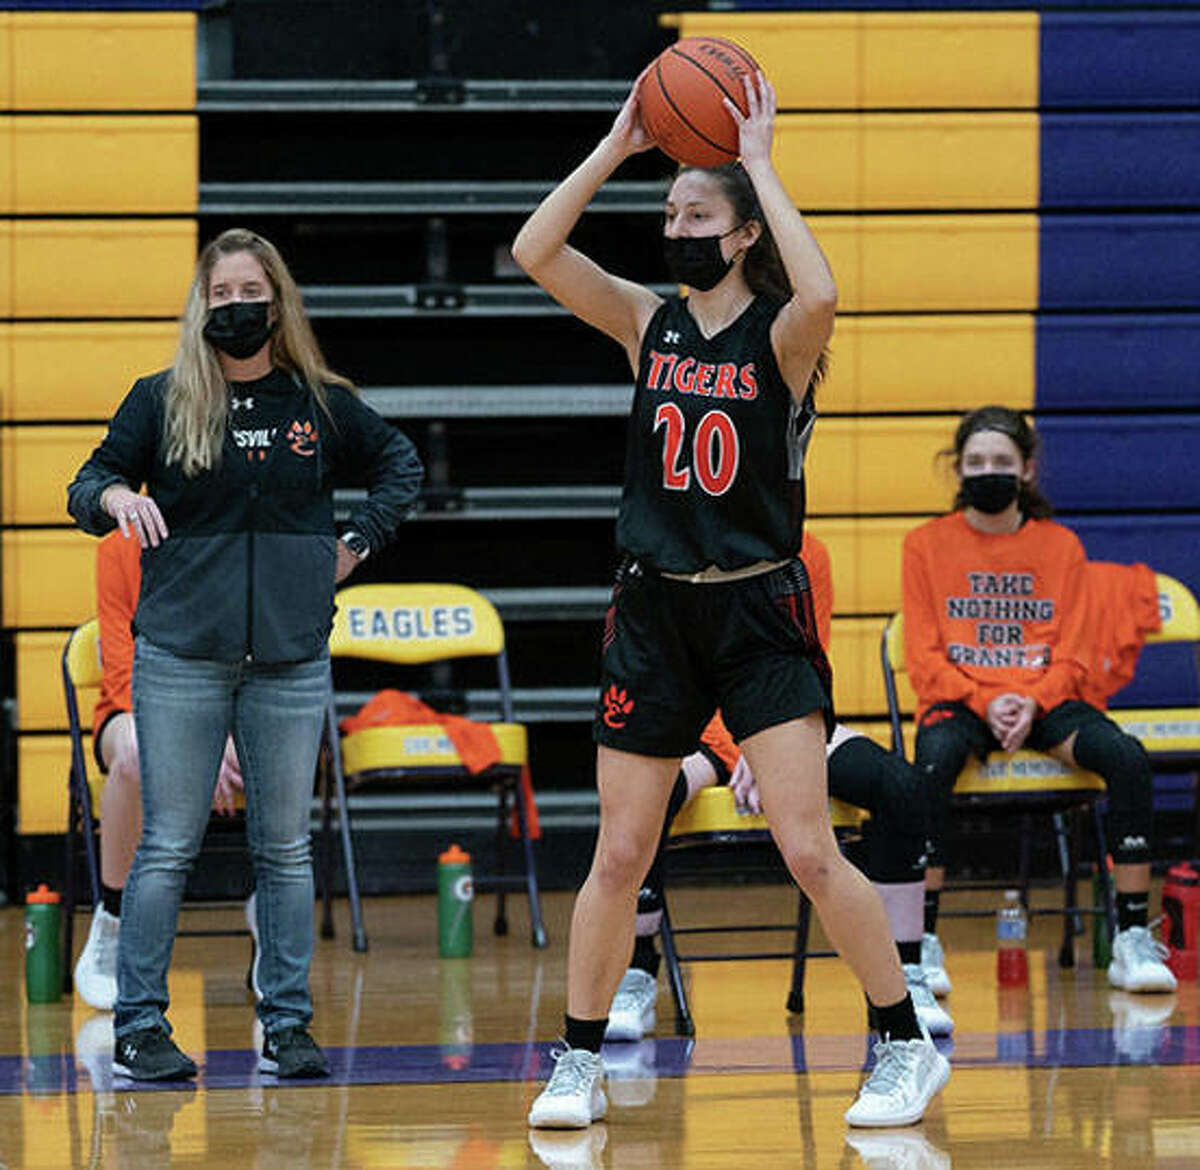 Edwardsville girls basketball coach Caty Happe looks on from the sideline as Emerson Weller looks for an open teammate to pass to during a game at Civic Memorial.